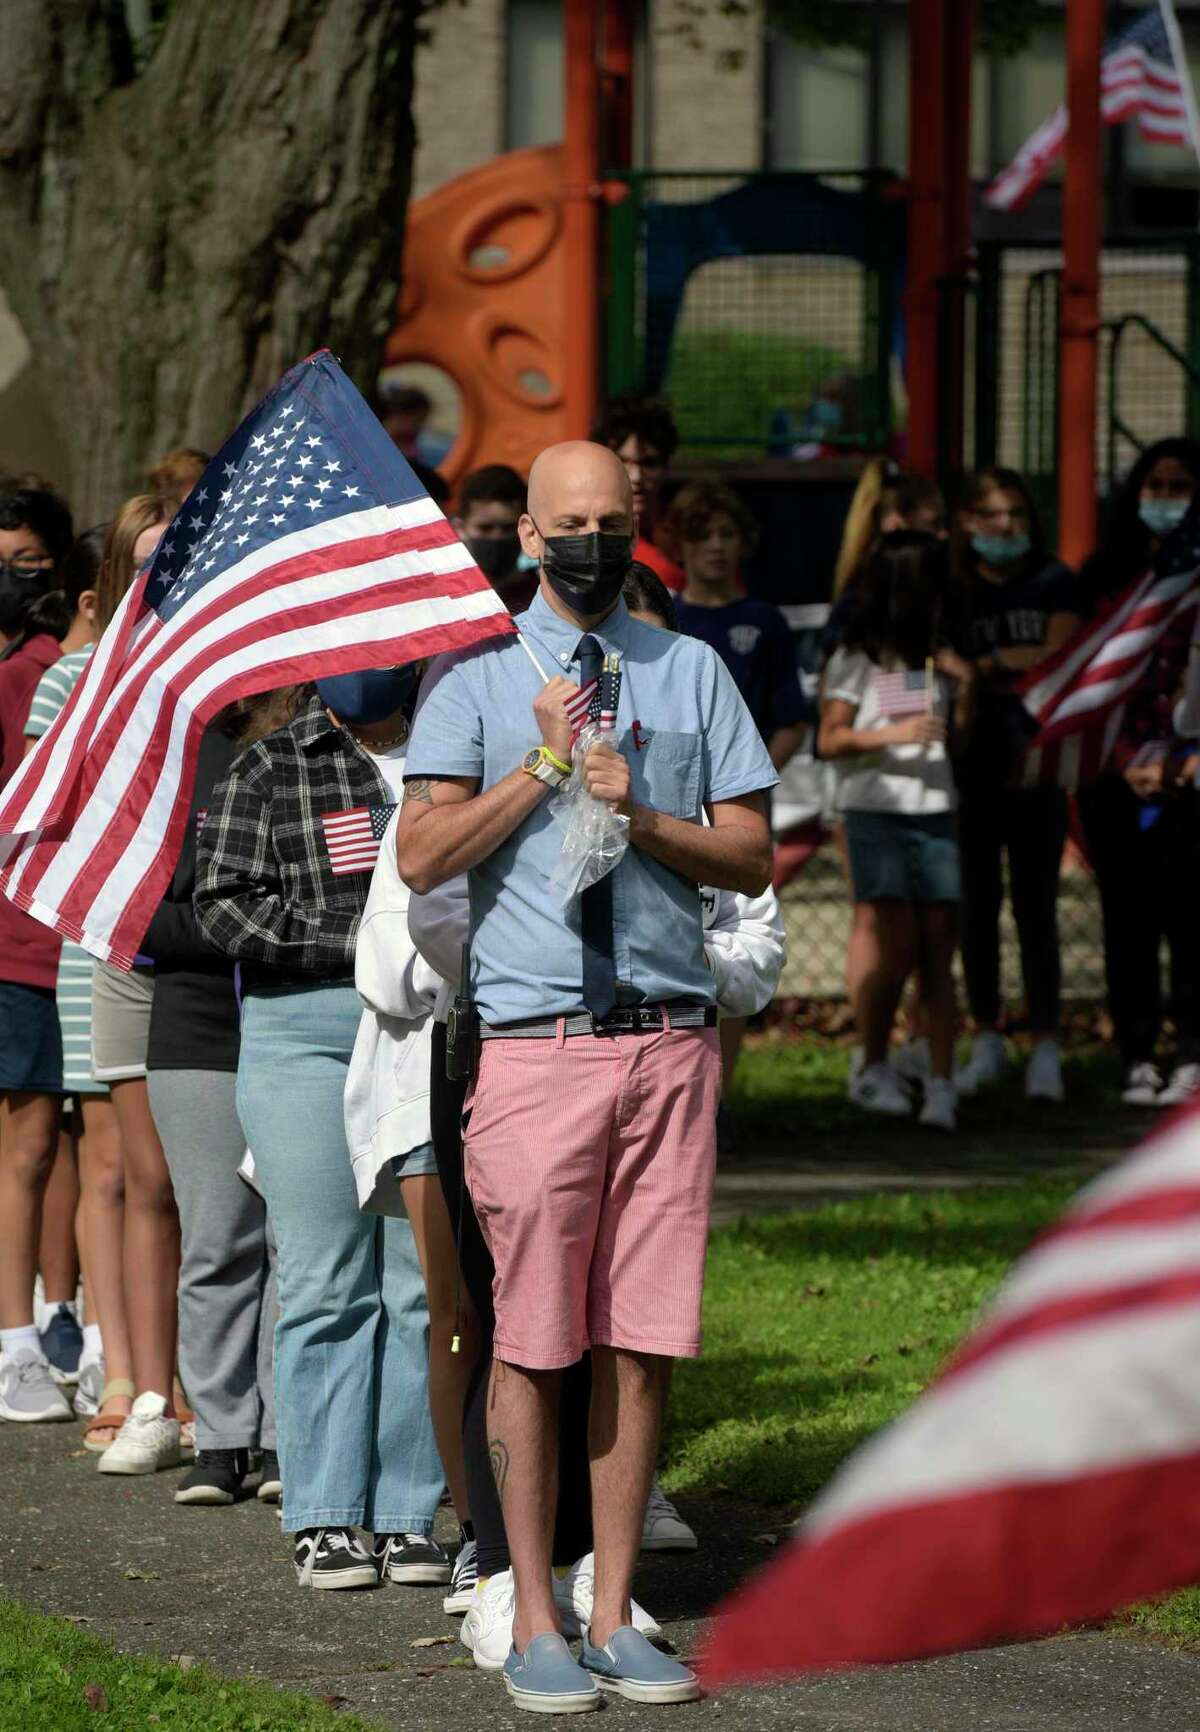 Eighth grade teacher David Bongiorno leads students from St. Joseph School, in Danbury, to each plant a flag during a September 11th 20th Anniversary Ceremony at the school on Friday Morning. September 10, 2021, Danbury, Conn.